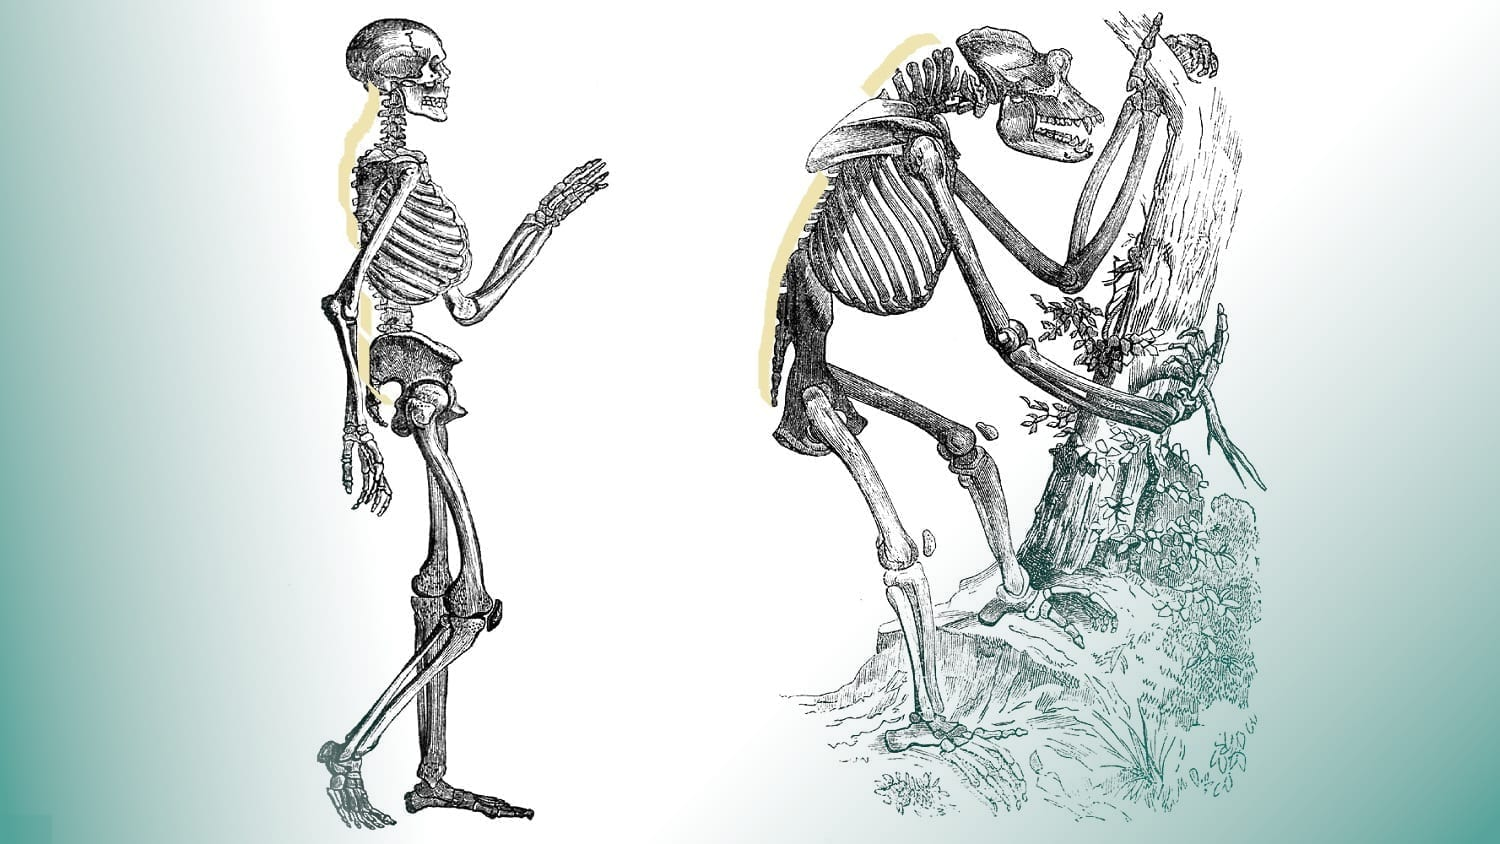 Drawings of Ape and Human Skeletons from 1859